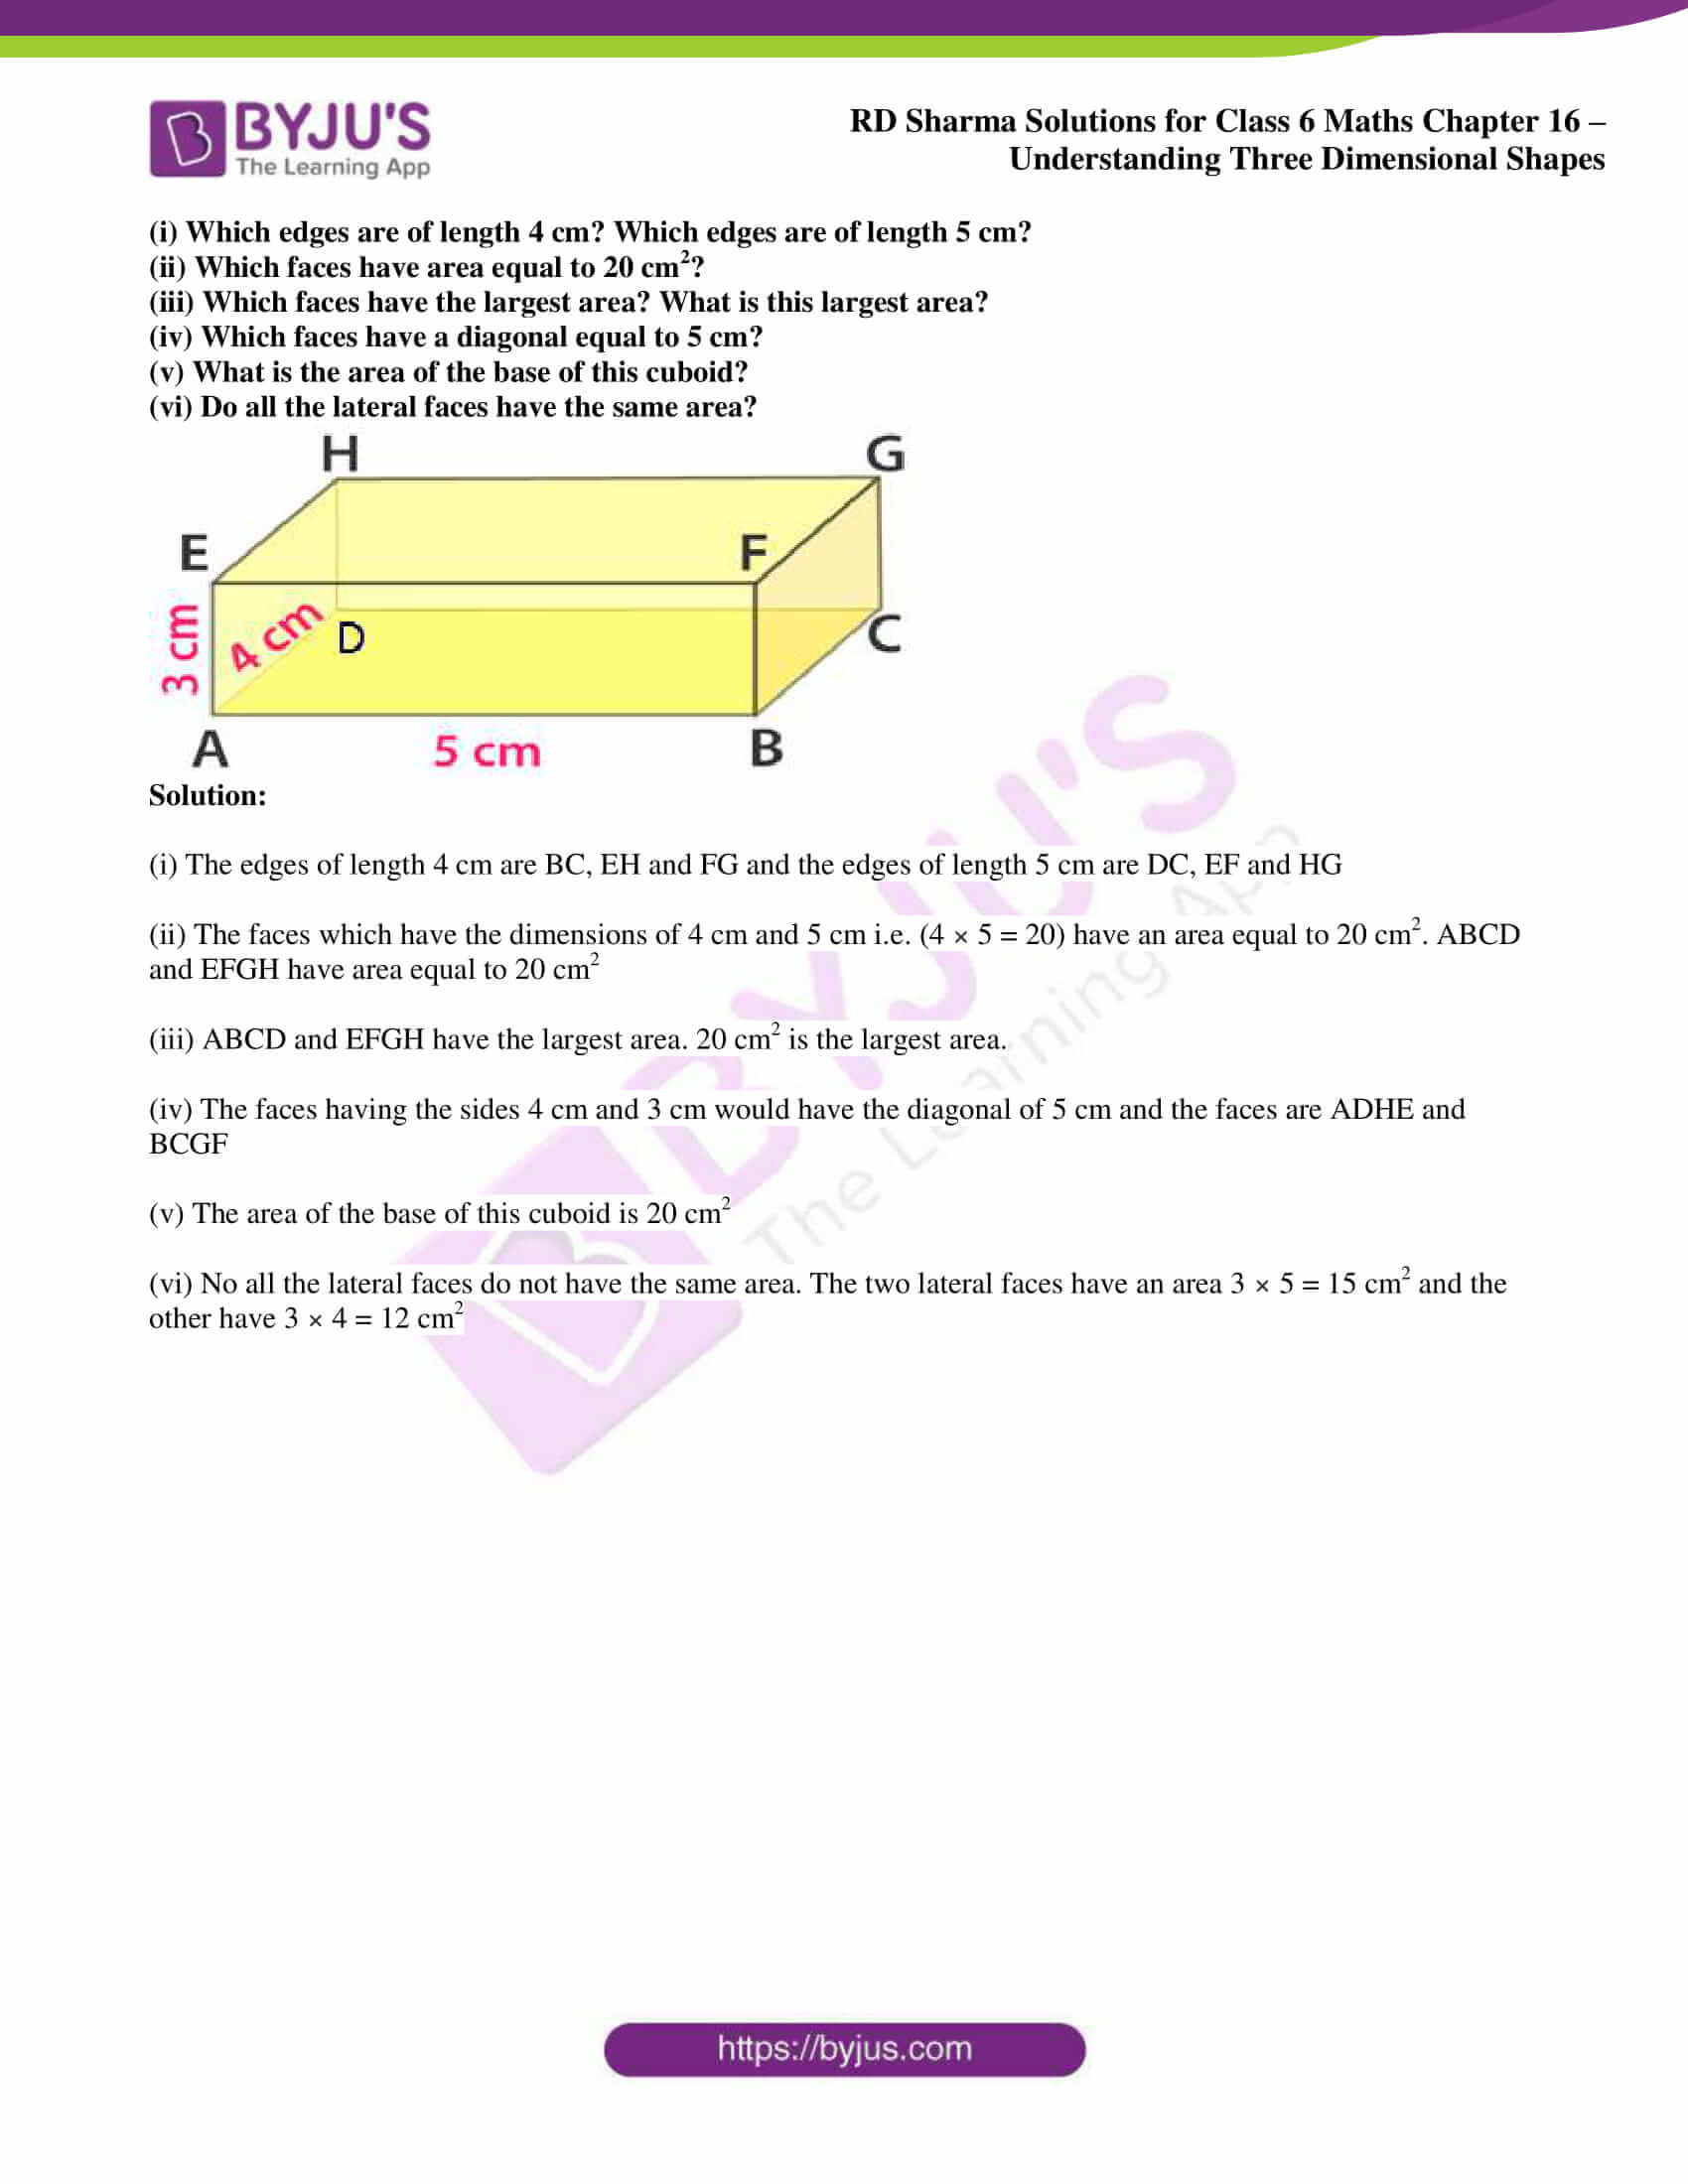 rd sharma solutions nov2020 class 6 maths chapter 16 exercise 1 6